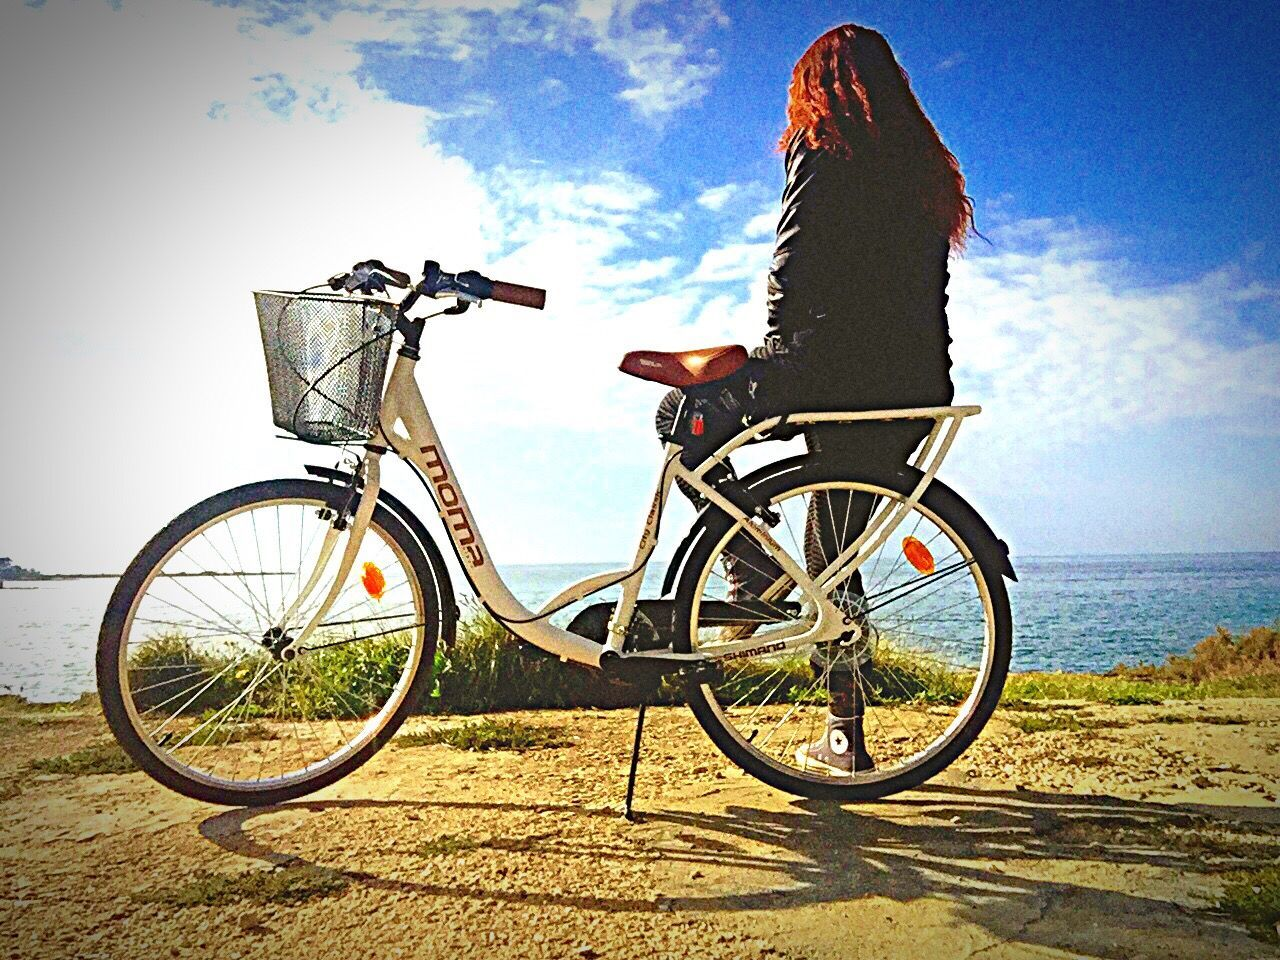 bicycle, transportation, sky, mode of transport, land vehicle, outdoors, day, real people, one person, nature, people